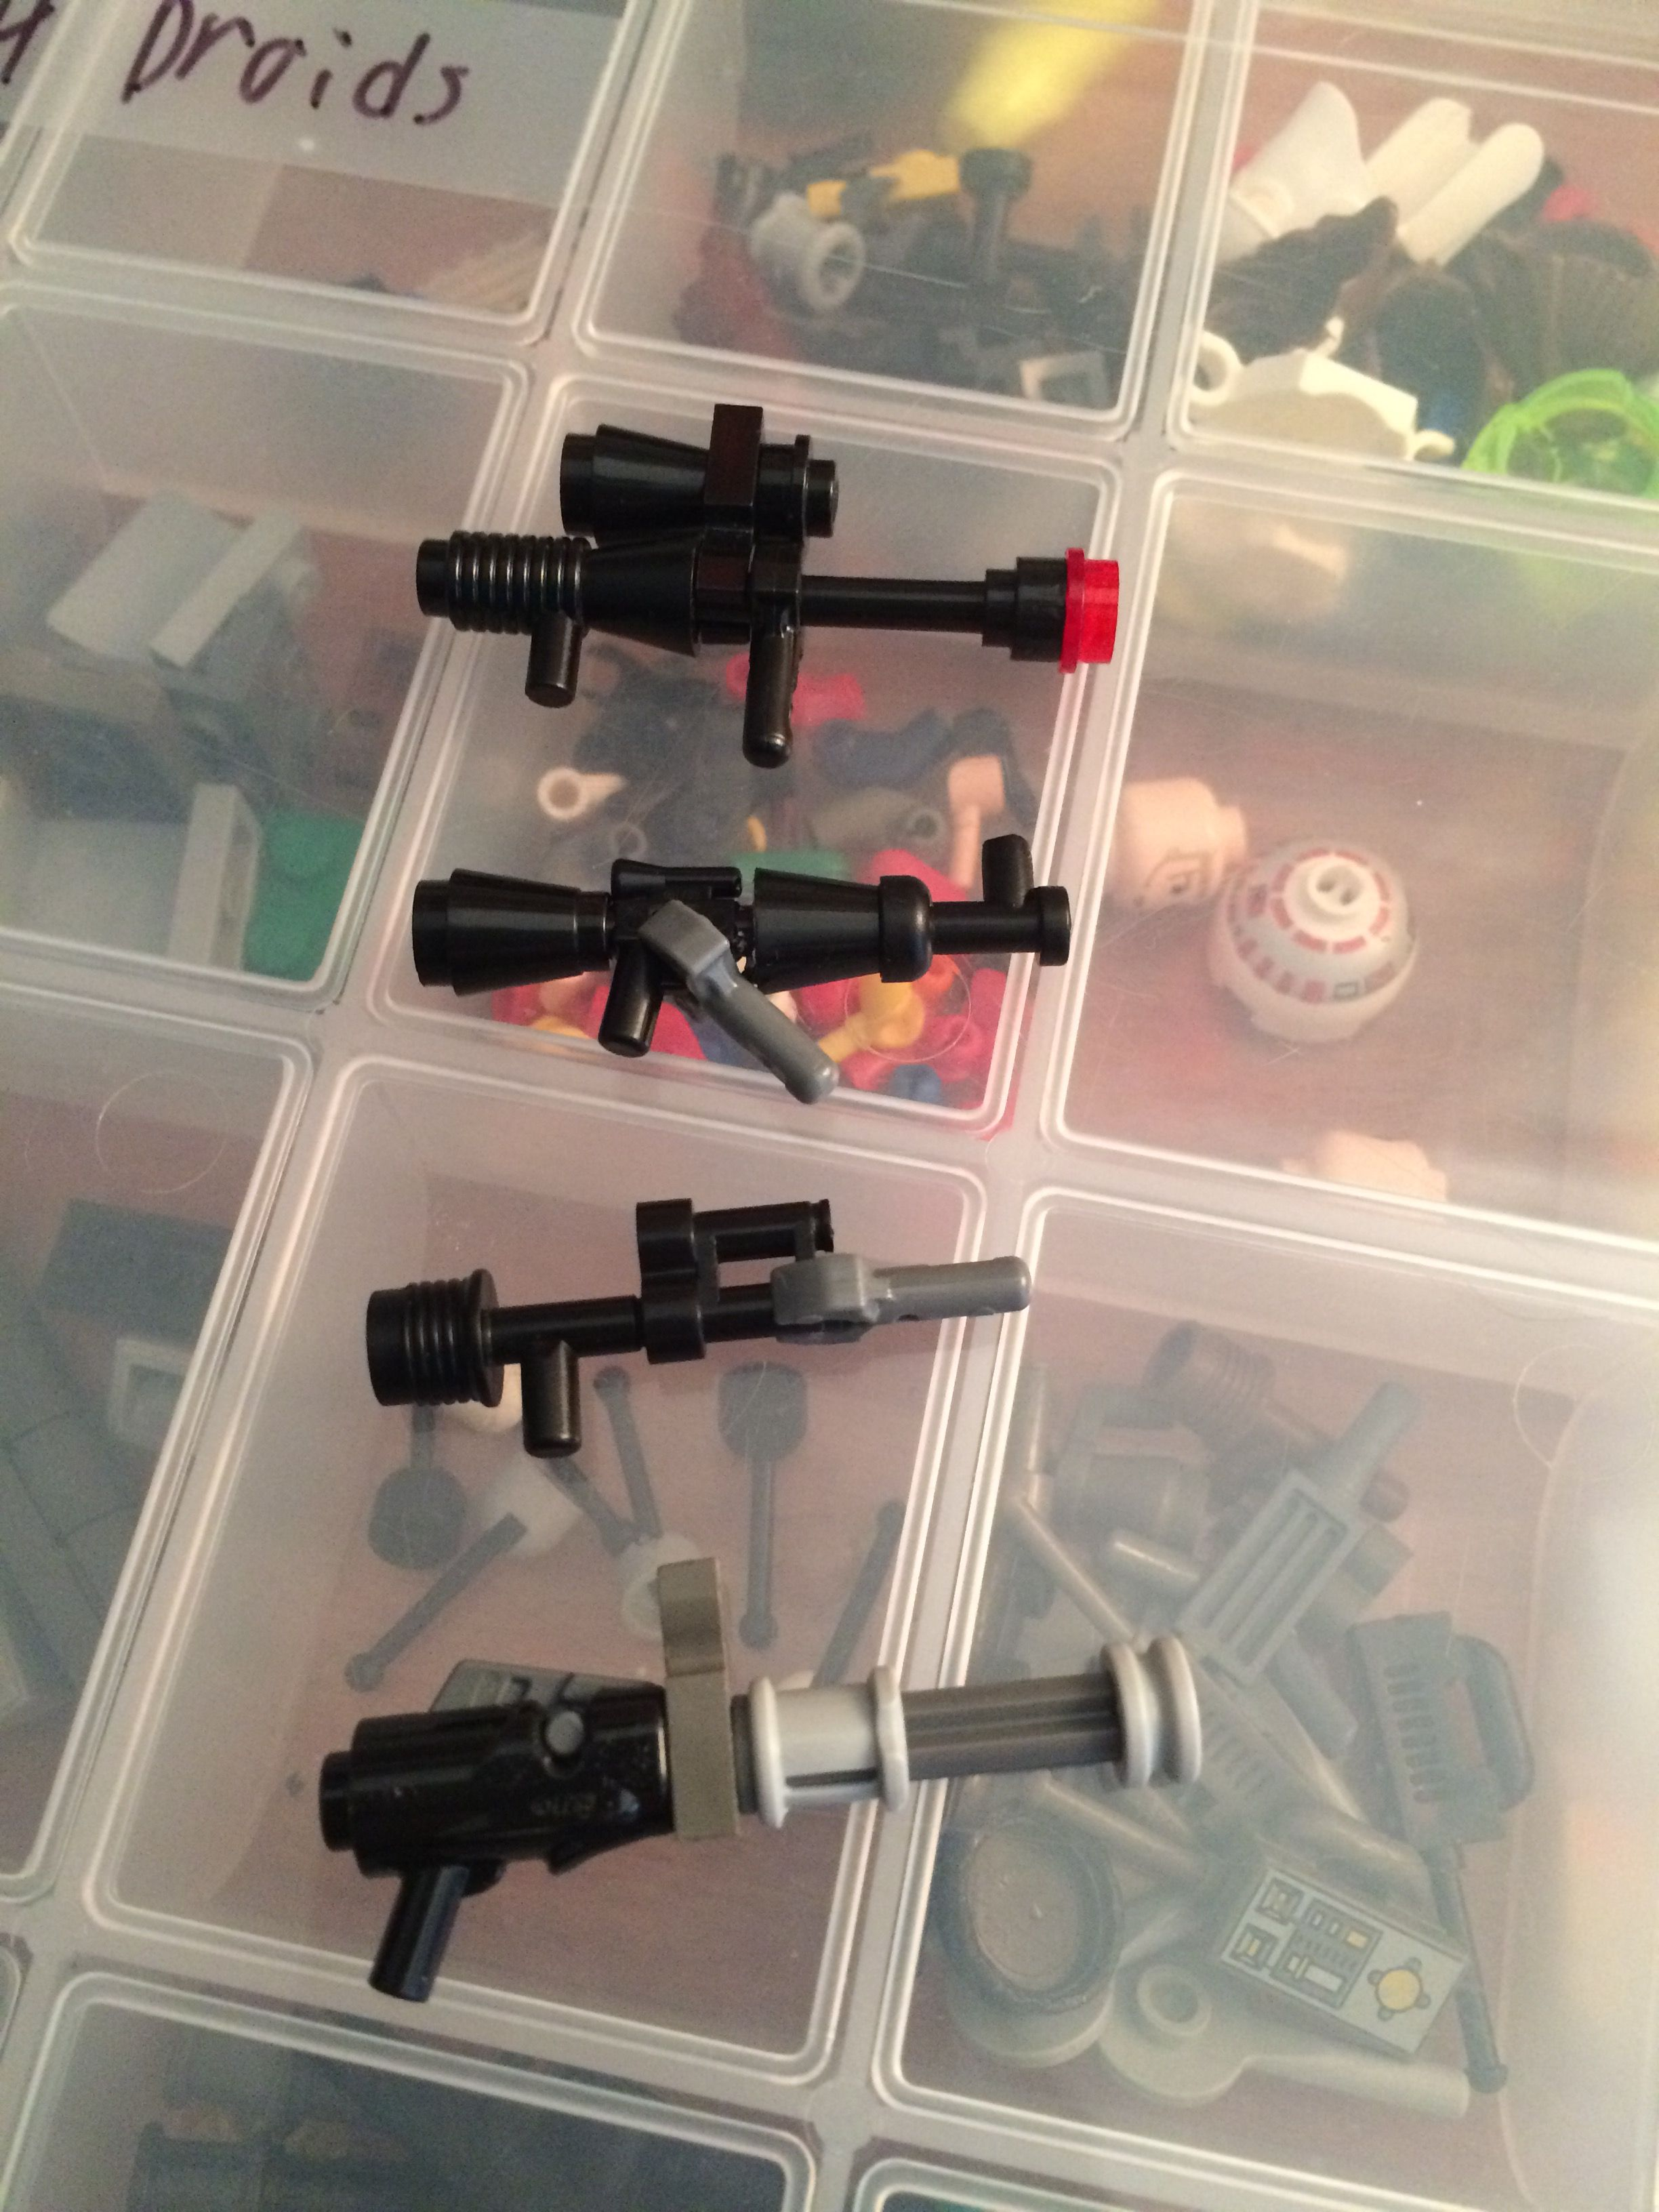 How to make awesome lego guns for minifigures